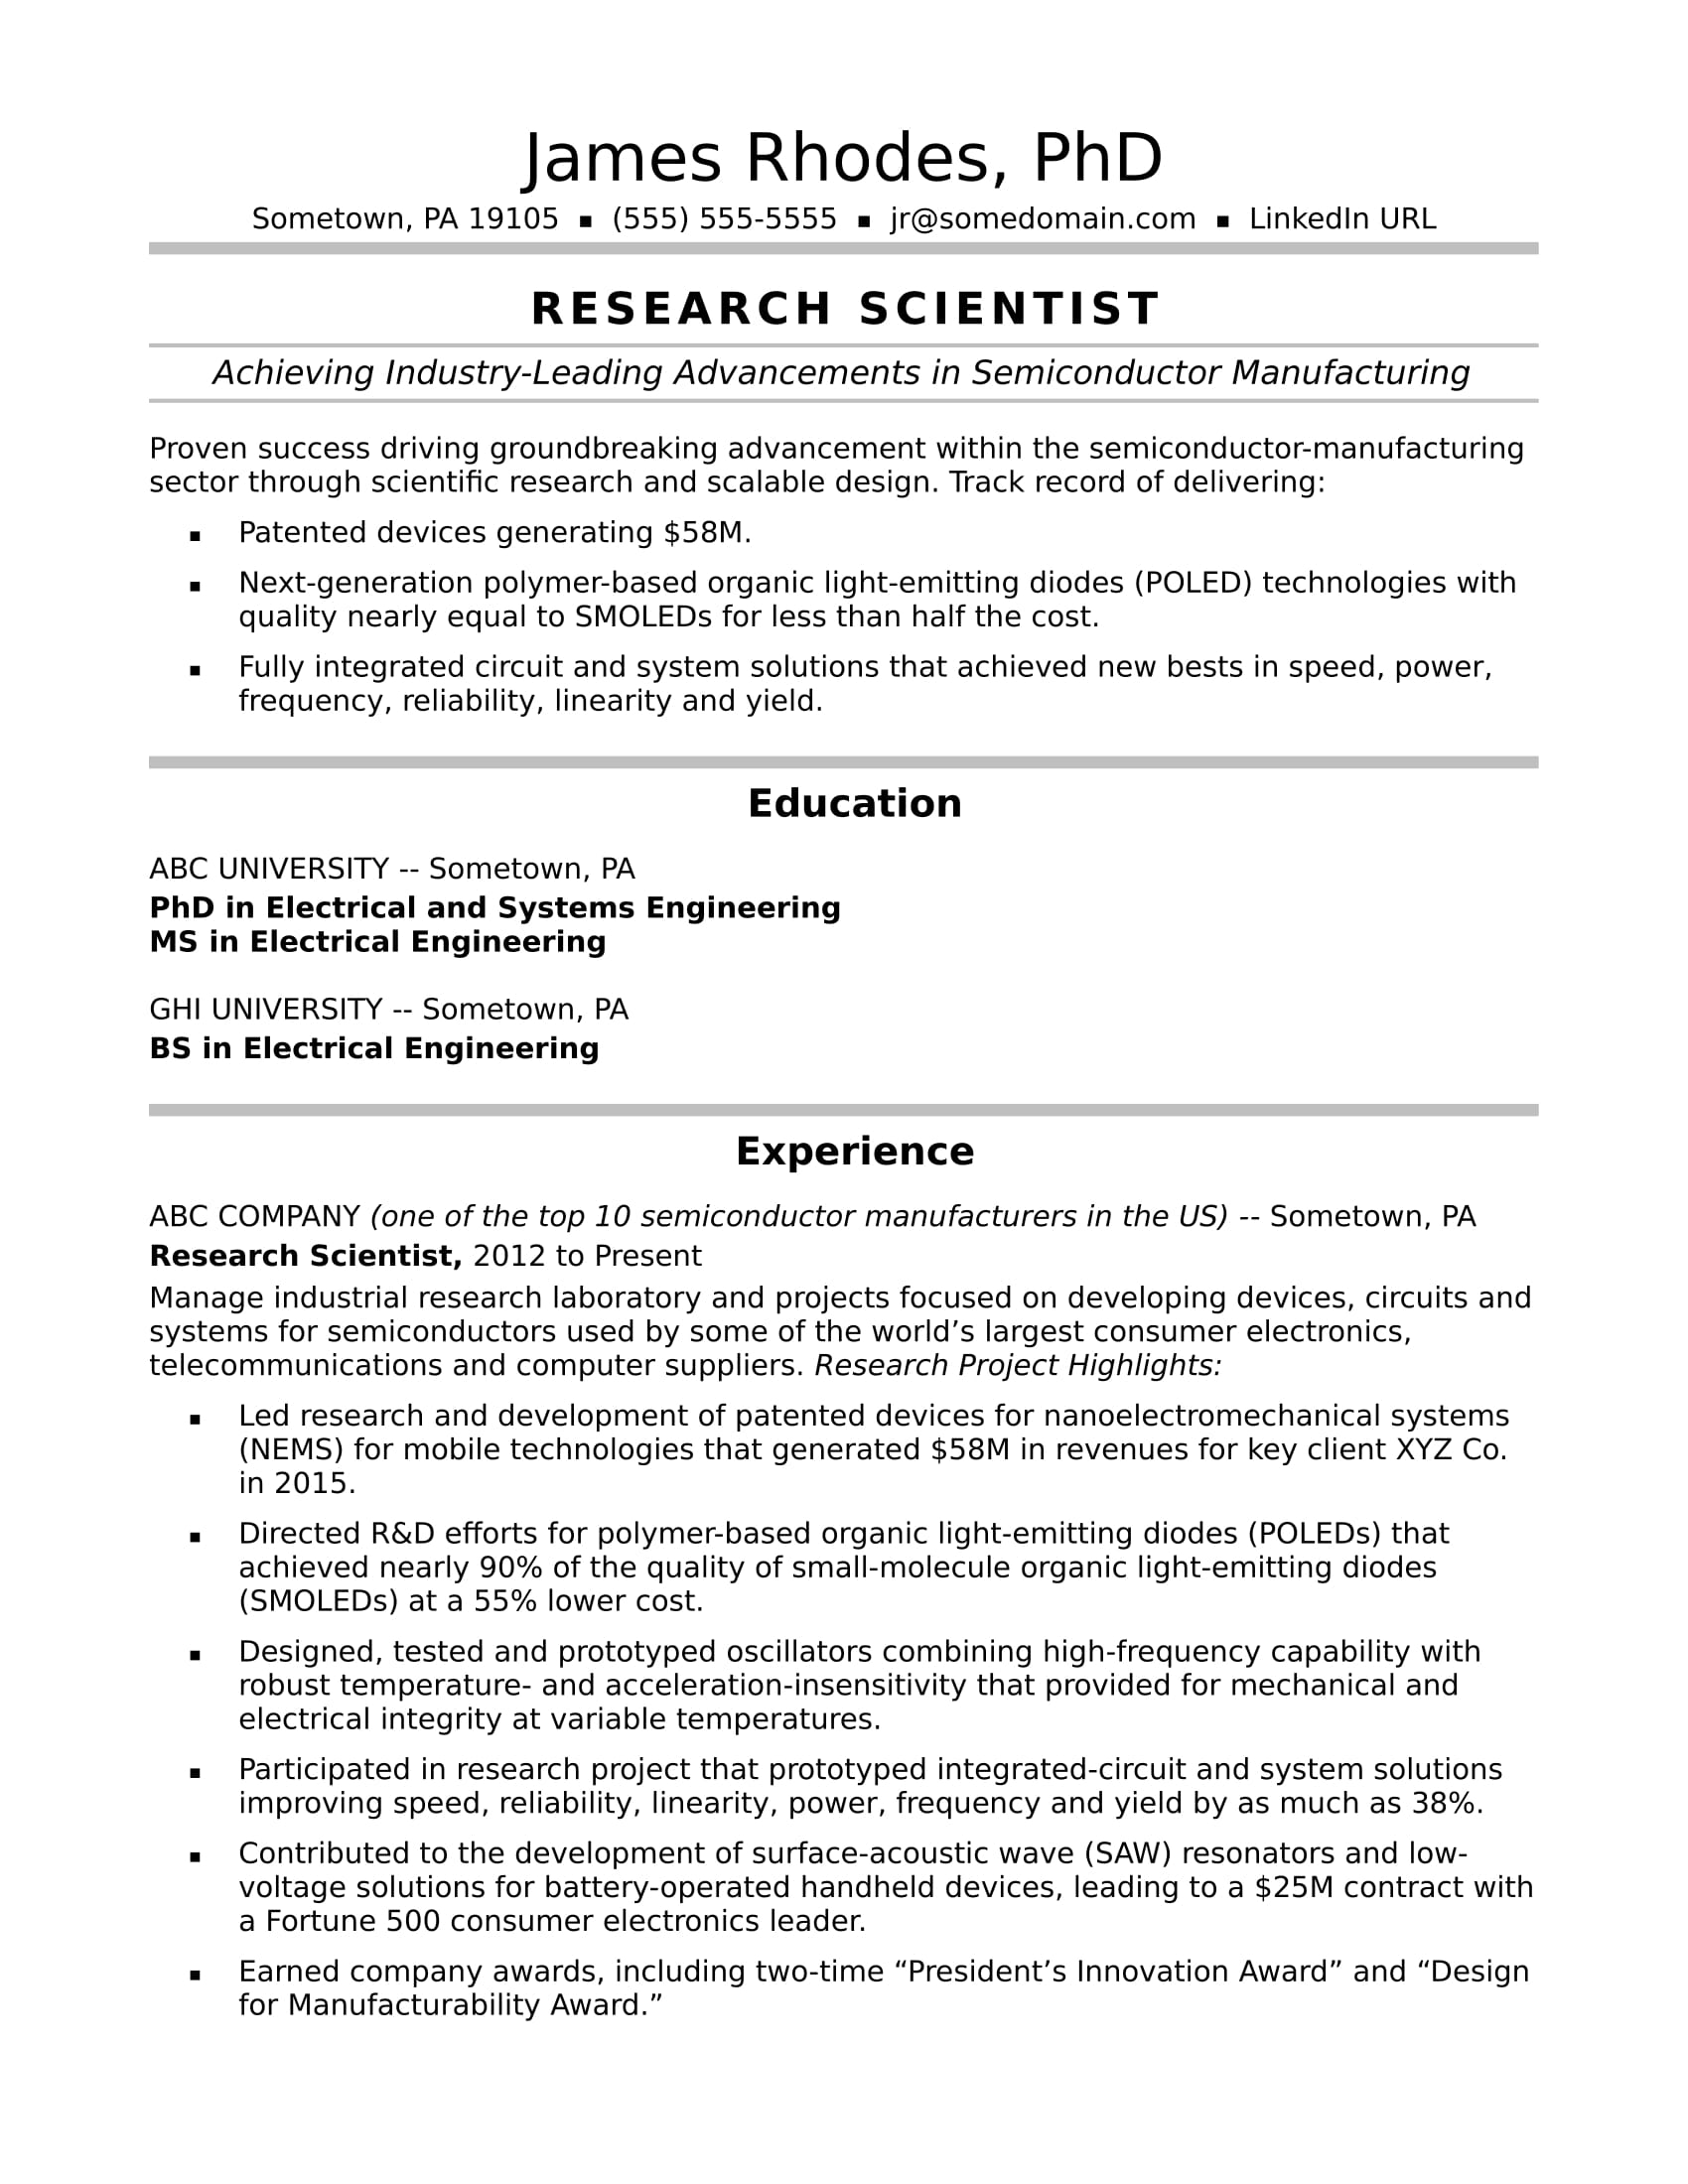 sample resume for a research scientist - Sample Resume For Publications